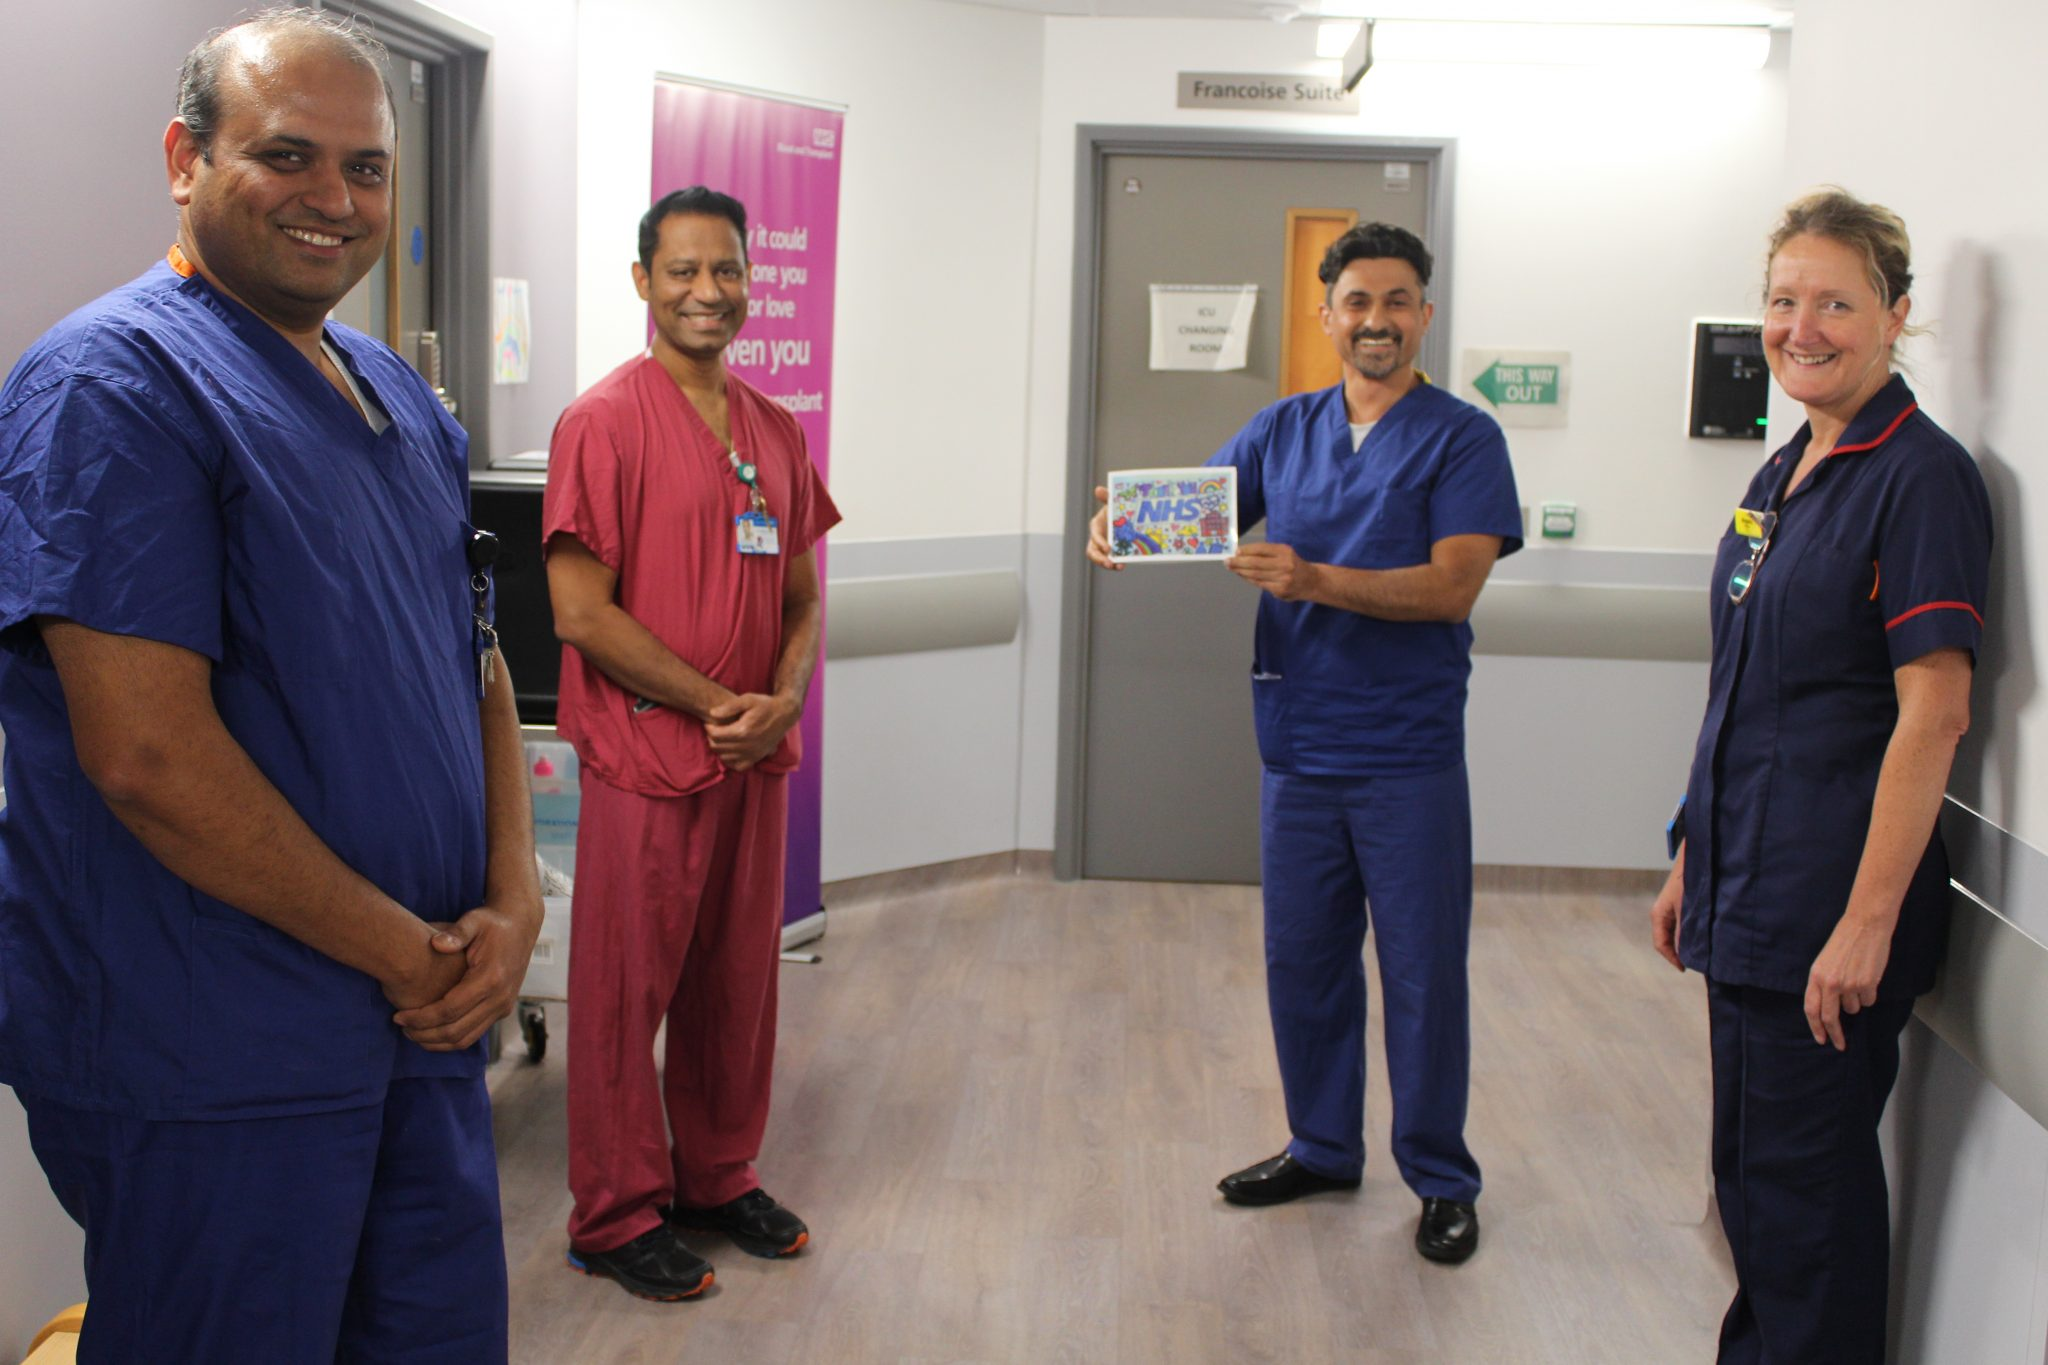 ICU was thankful for additional clinical support